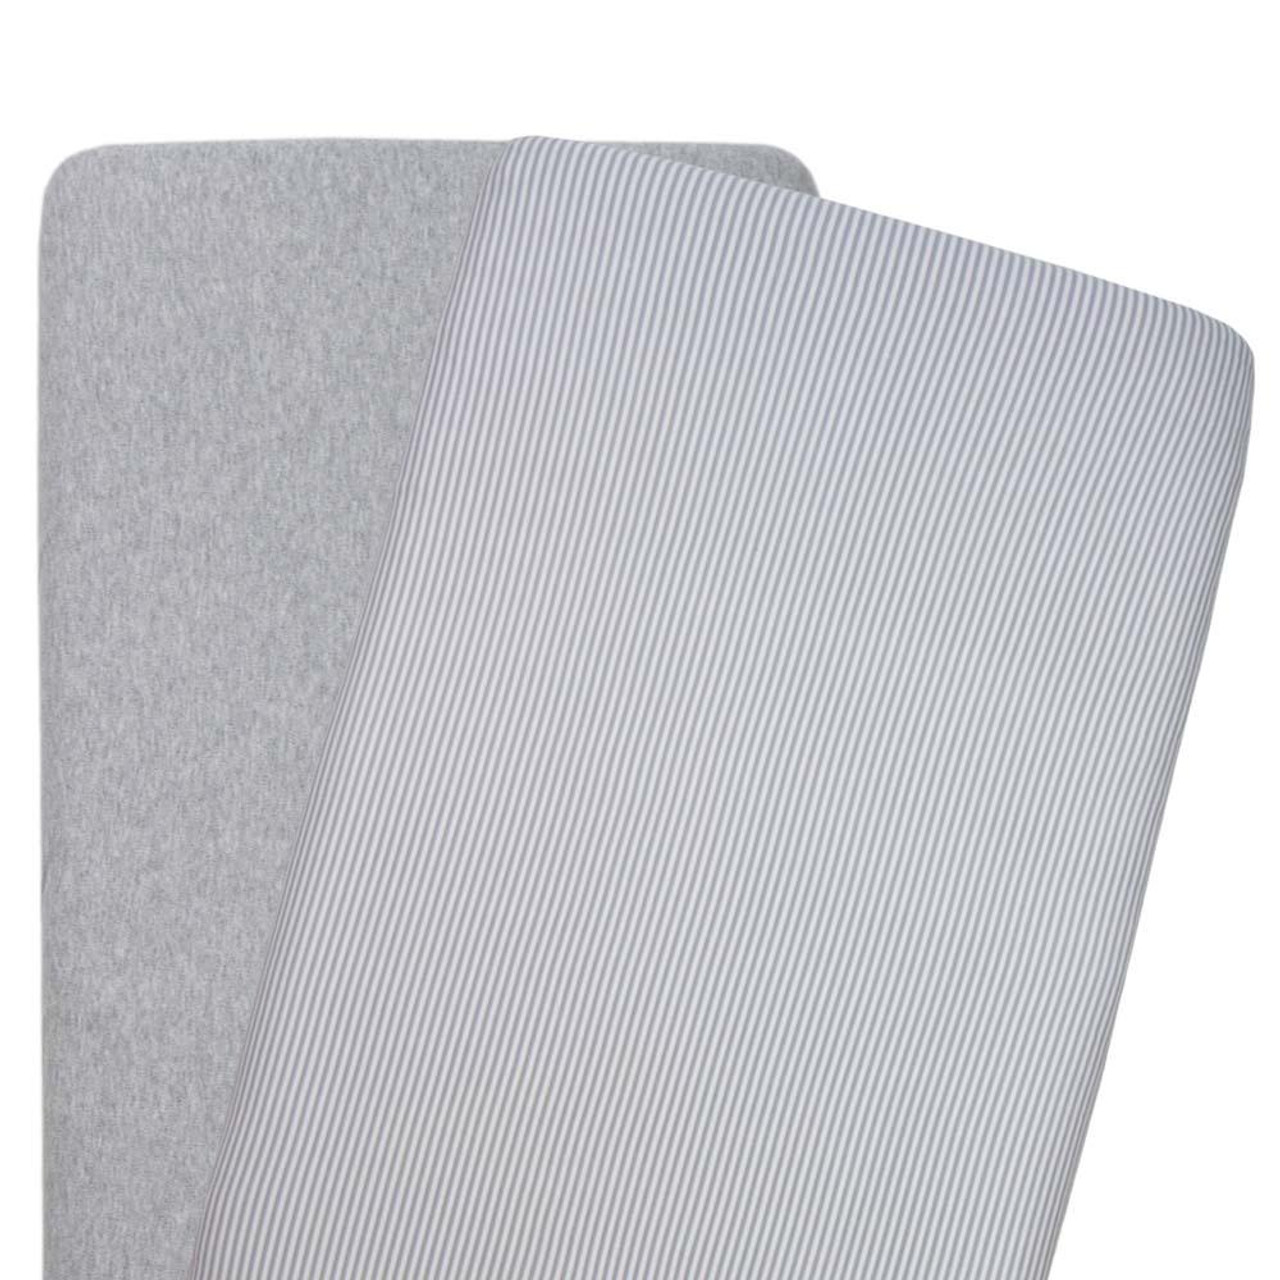 The Living Textiles 2 pack Cotton Jersey Bassinet Fitted Sheet - GREY